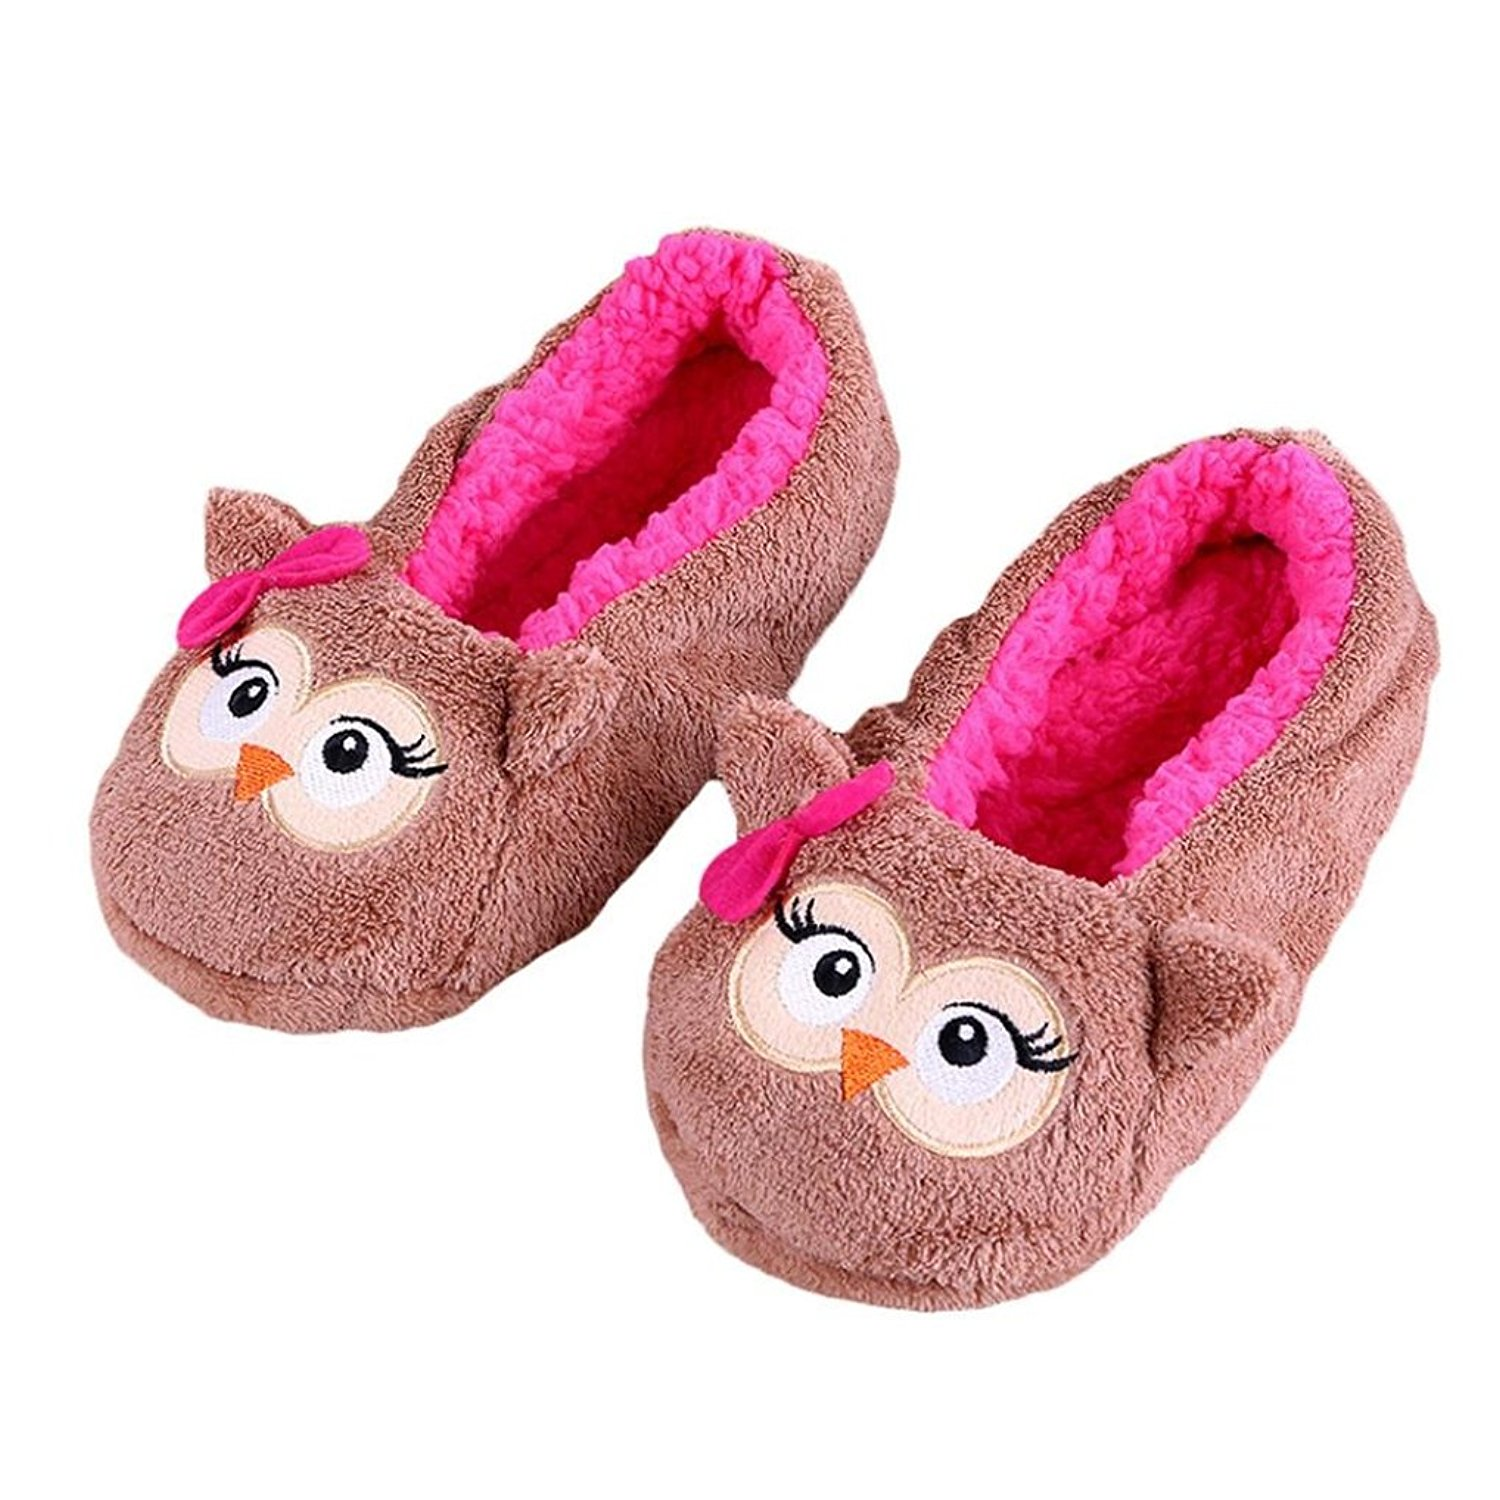 0cc0f17d8f0 Get Quotations · Appoi Women Slippers Plush Cotton Warm Indoor Slippers  Christmas Shoes Soft Plush Slippers Women Plush